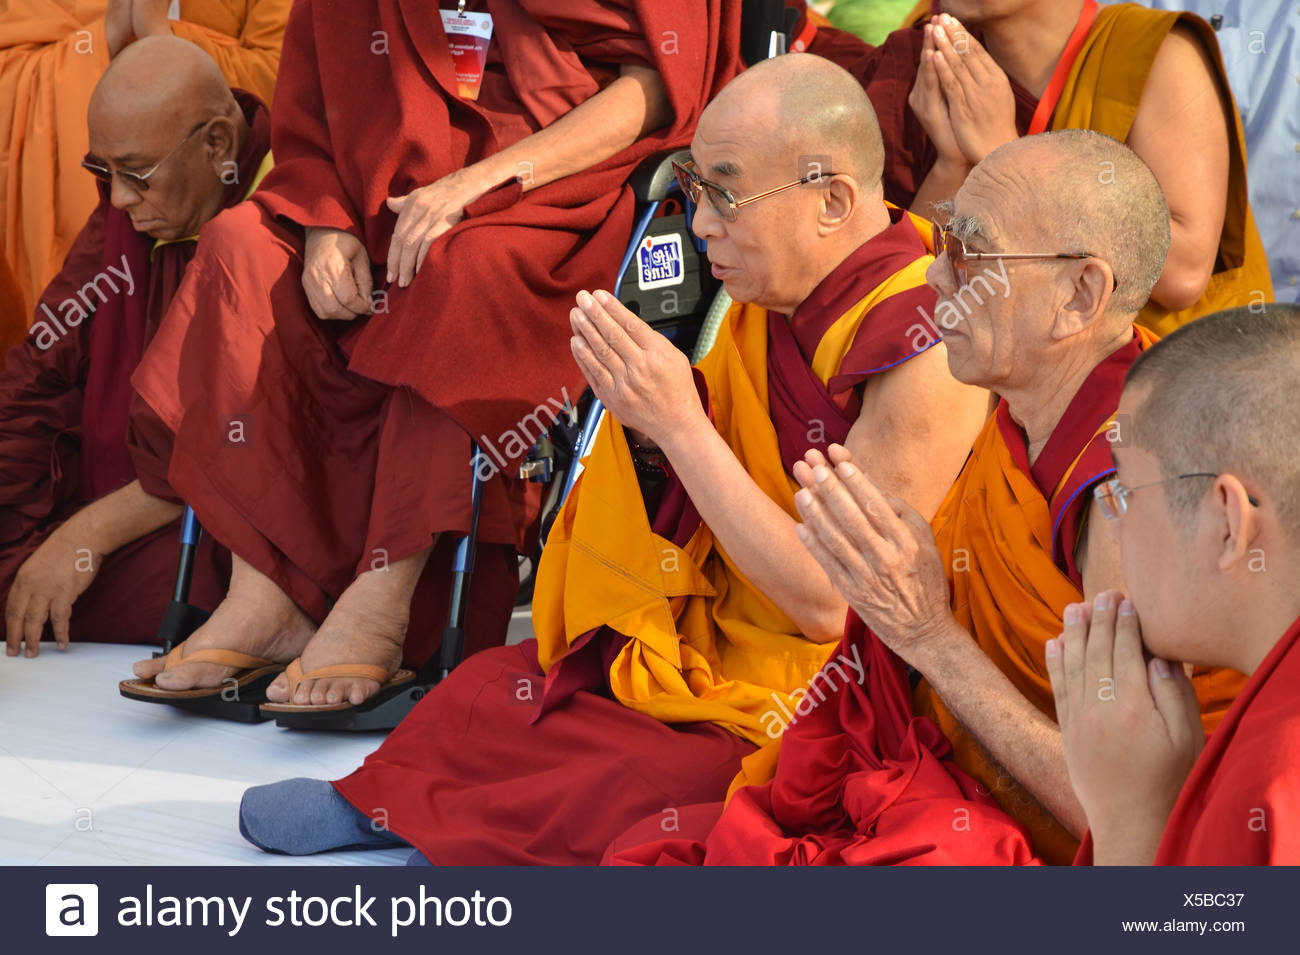 Buddhism, the Dalai Lama in a communal prayer with dignitaries, eg Karamapa, from all Buddhist branches and schools, gathering - Stock Image